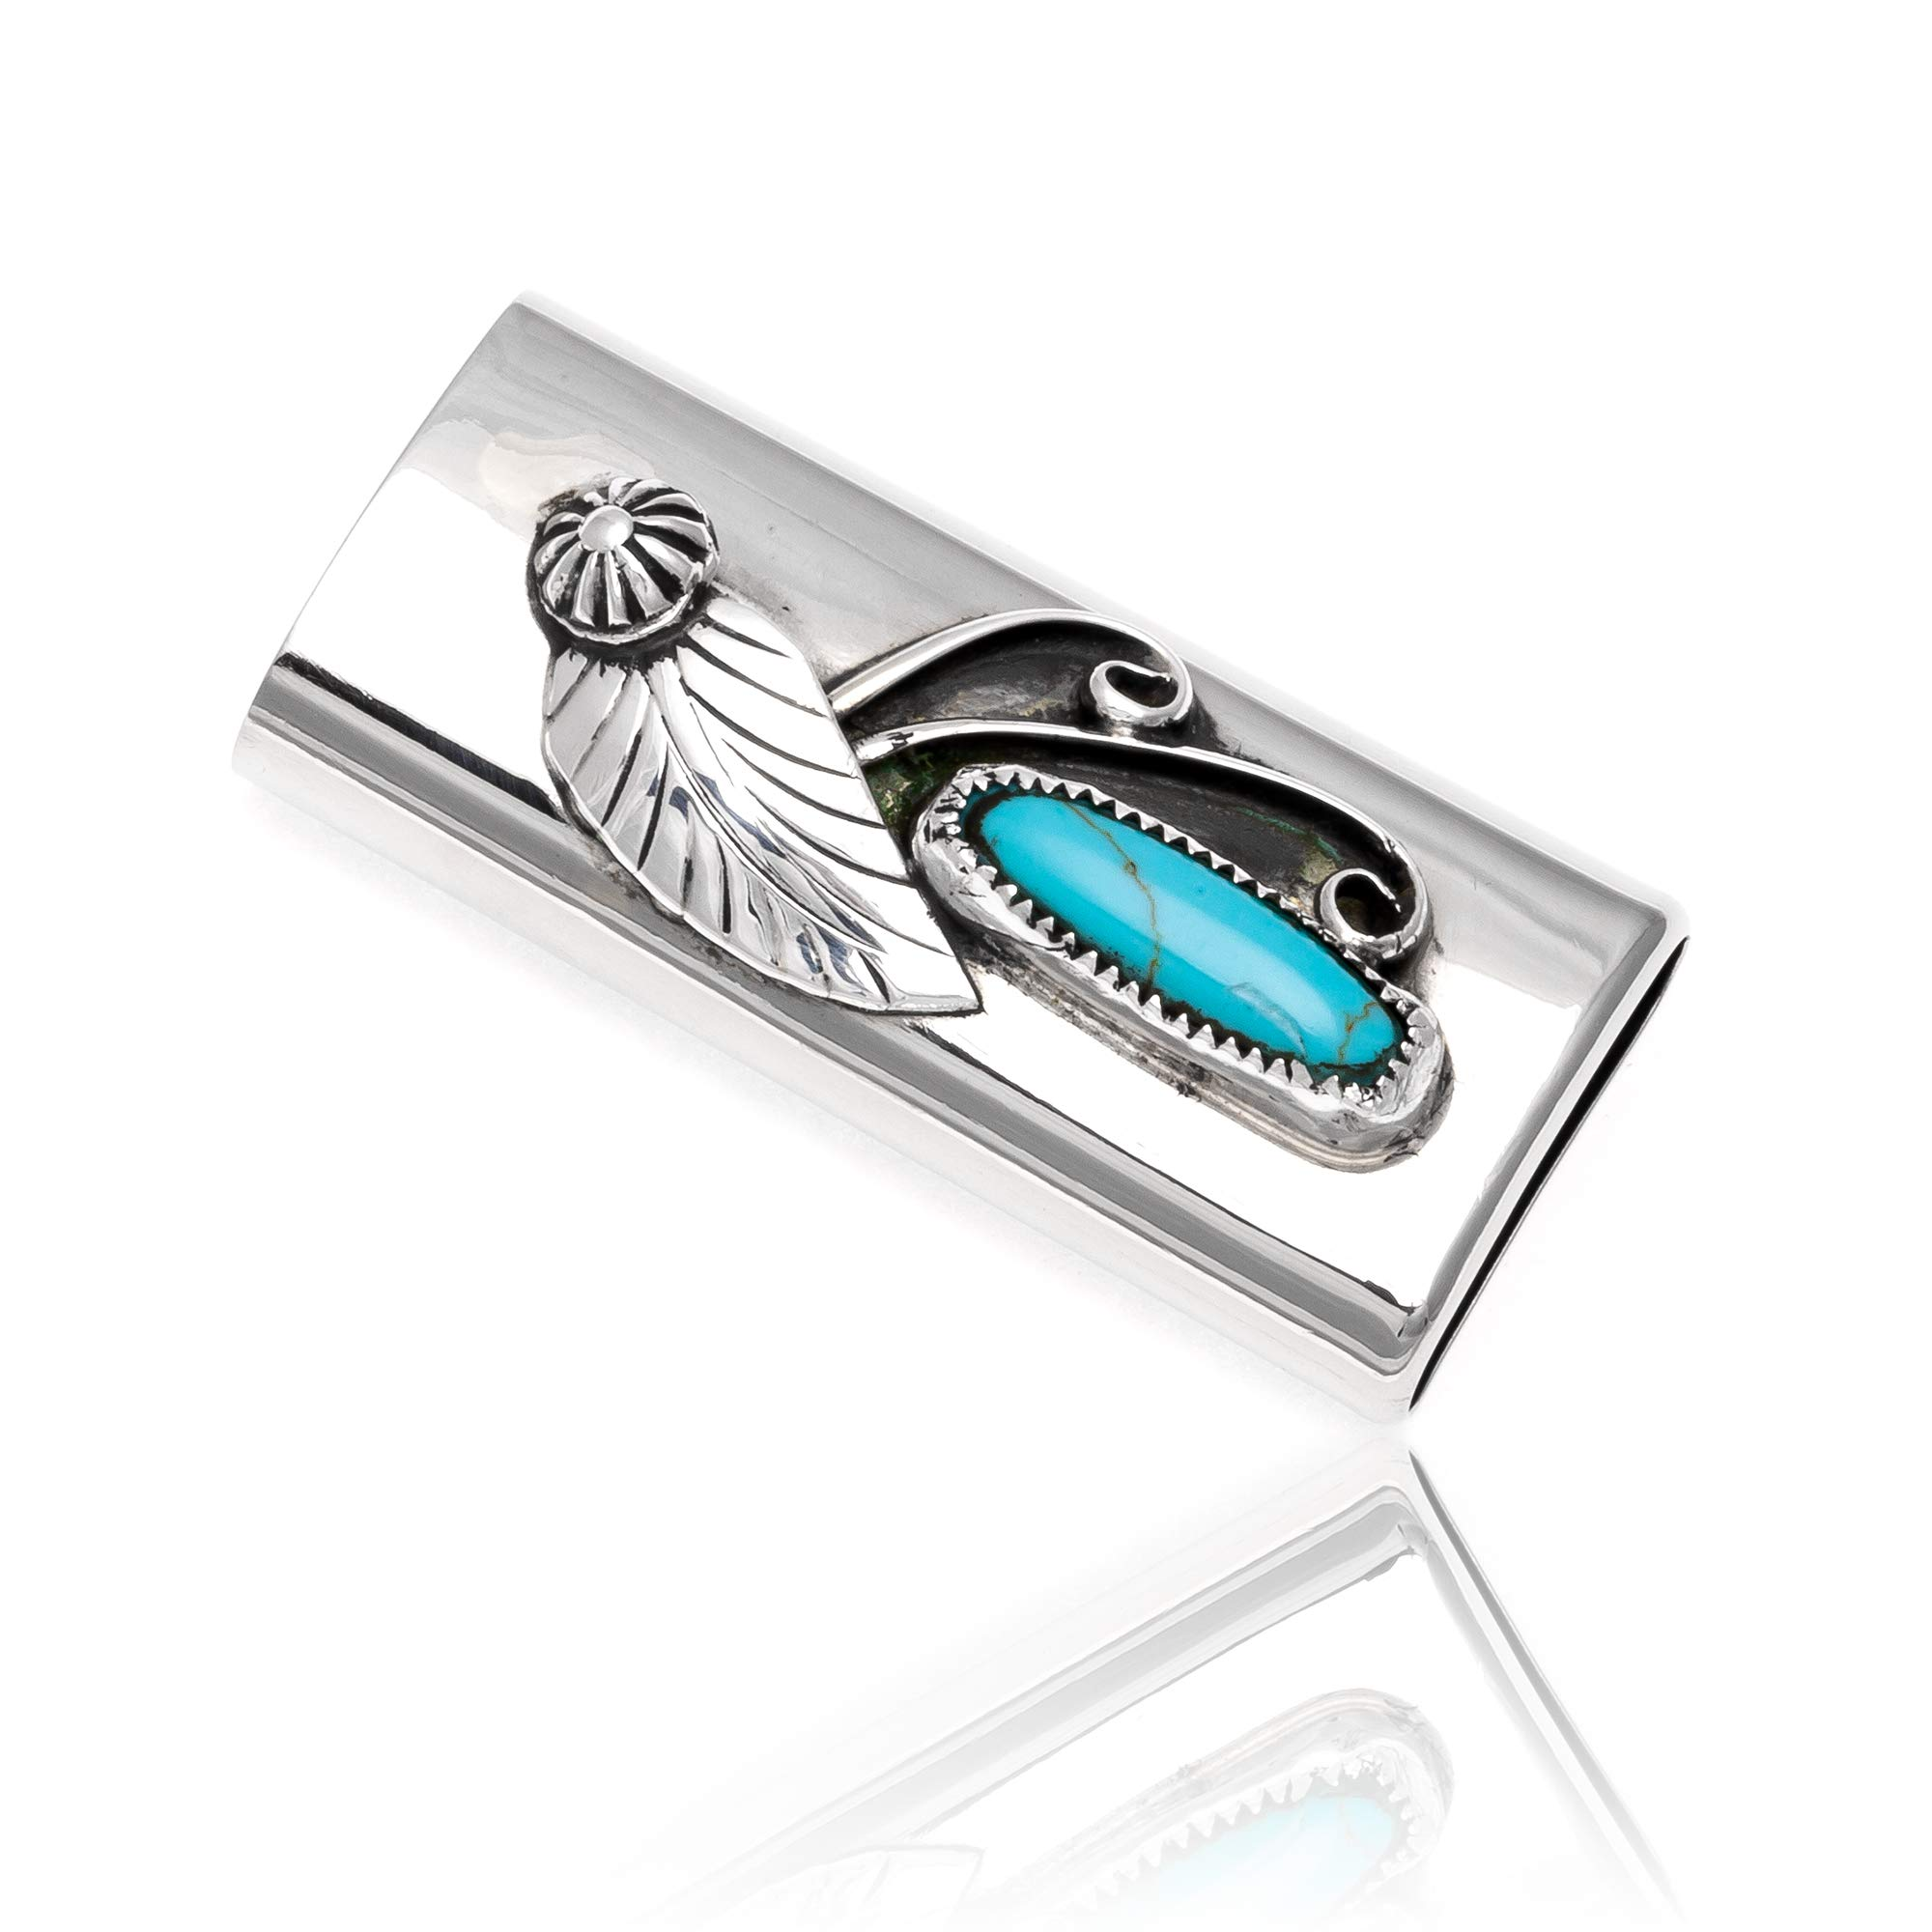 Native-Bay $200Tag Turquoise Silver Nickel Certified Navajo Flower Leaf Lighter Case 18334 Made by Loma Siiva